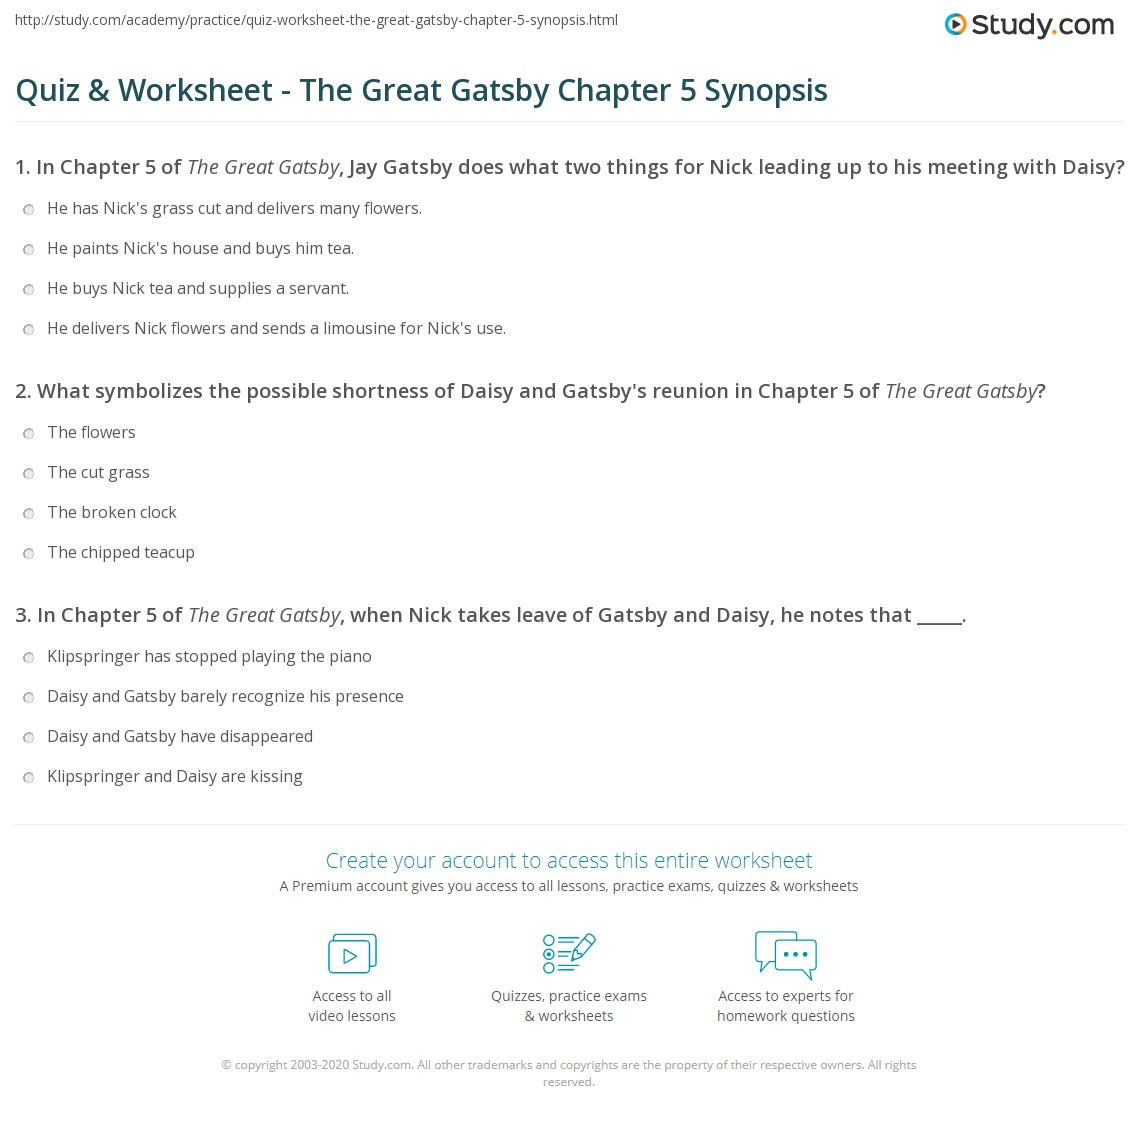 the great gatsby essays page png awsaccesskeyid akiaiaywevoldtia  quiz worksheet the great gatsby chapter synopsis com print the great gatsby chapter 5 summary worksheet